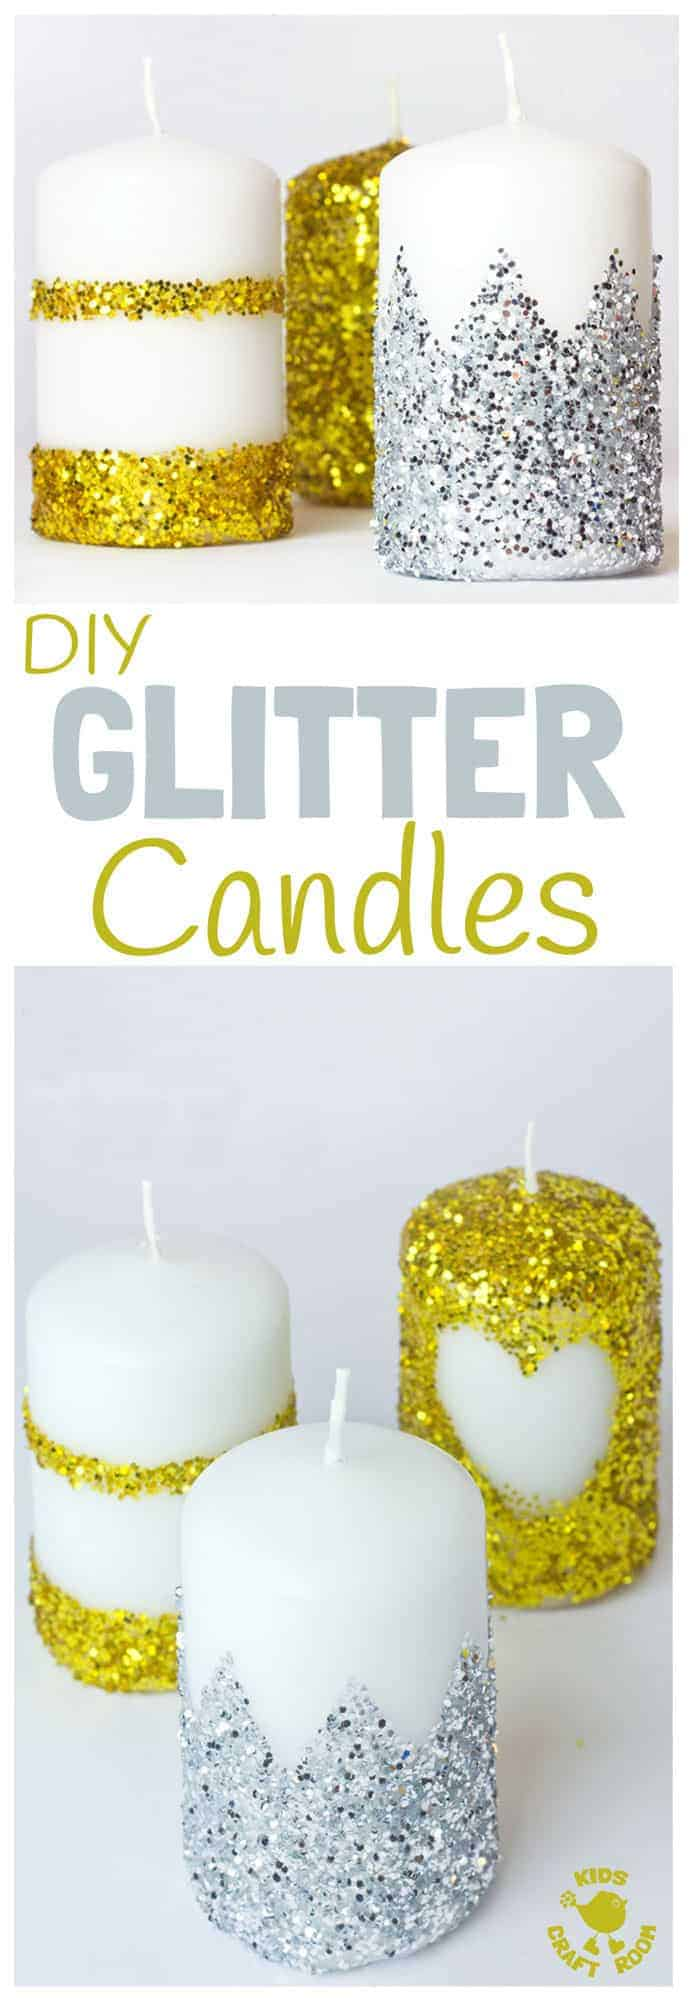 GORGEOUS DIY GLITTER CANDLES- Have you wondered how to make glitter candles? These homemade candles are easy enough for kids to make. They look so pretty and make great gifts too. Fantastic for Christmas or New Year's Eve Ornaments. #christmas #newyearseve #candles #diy #giftideas #kidscrafts #christmascrafts #newyearcrafts #homemadecandles #glitter #homemade #kidscraftroom #ornaments